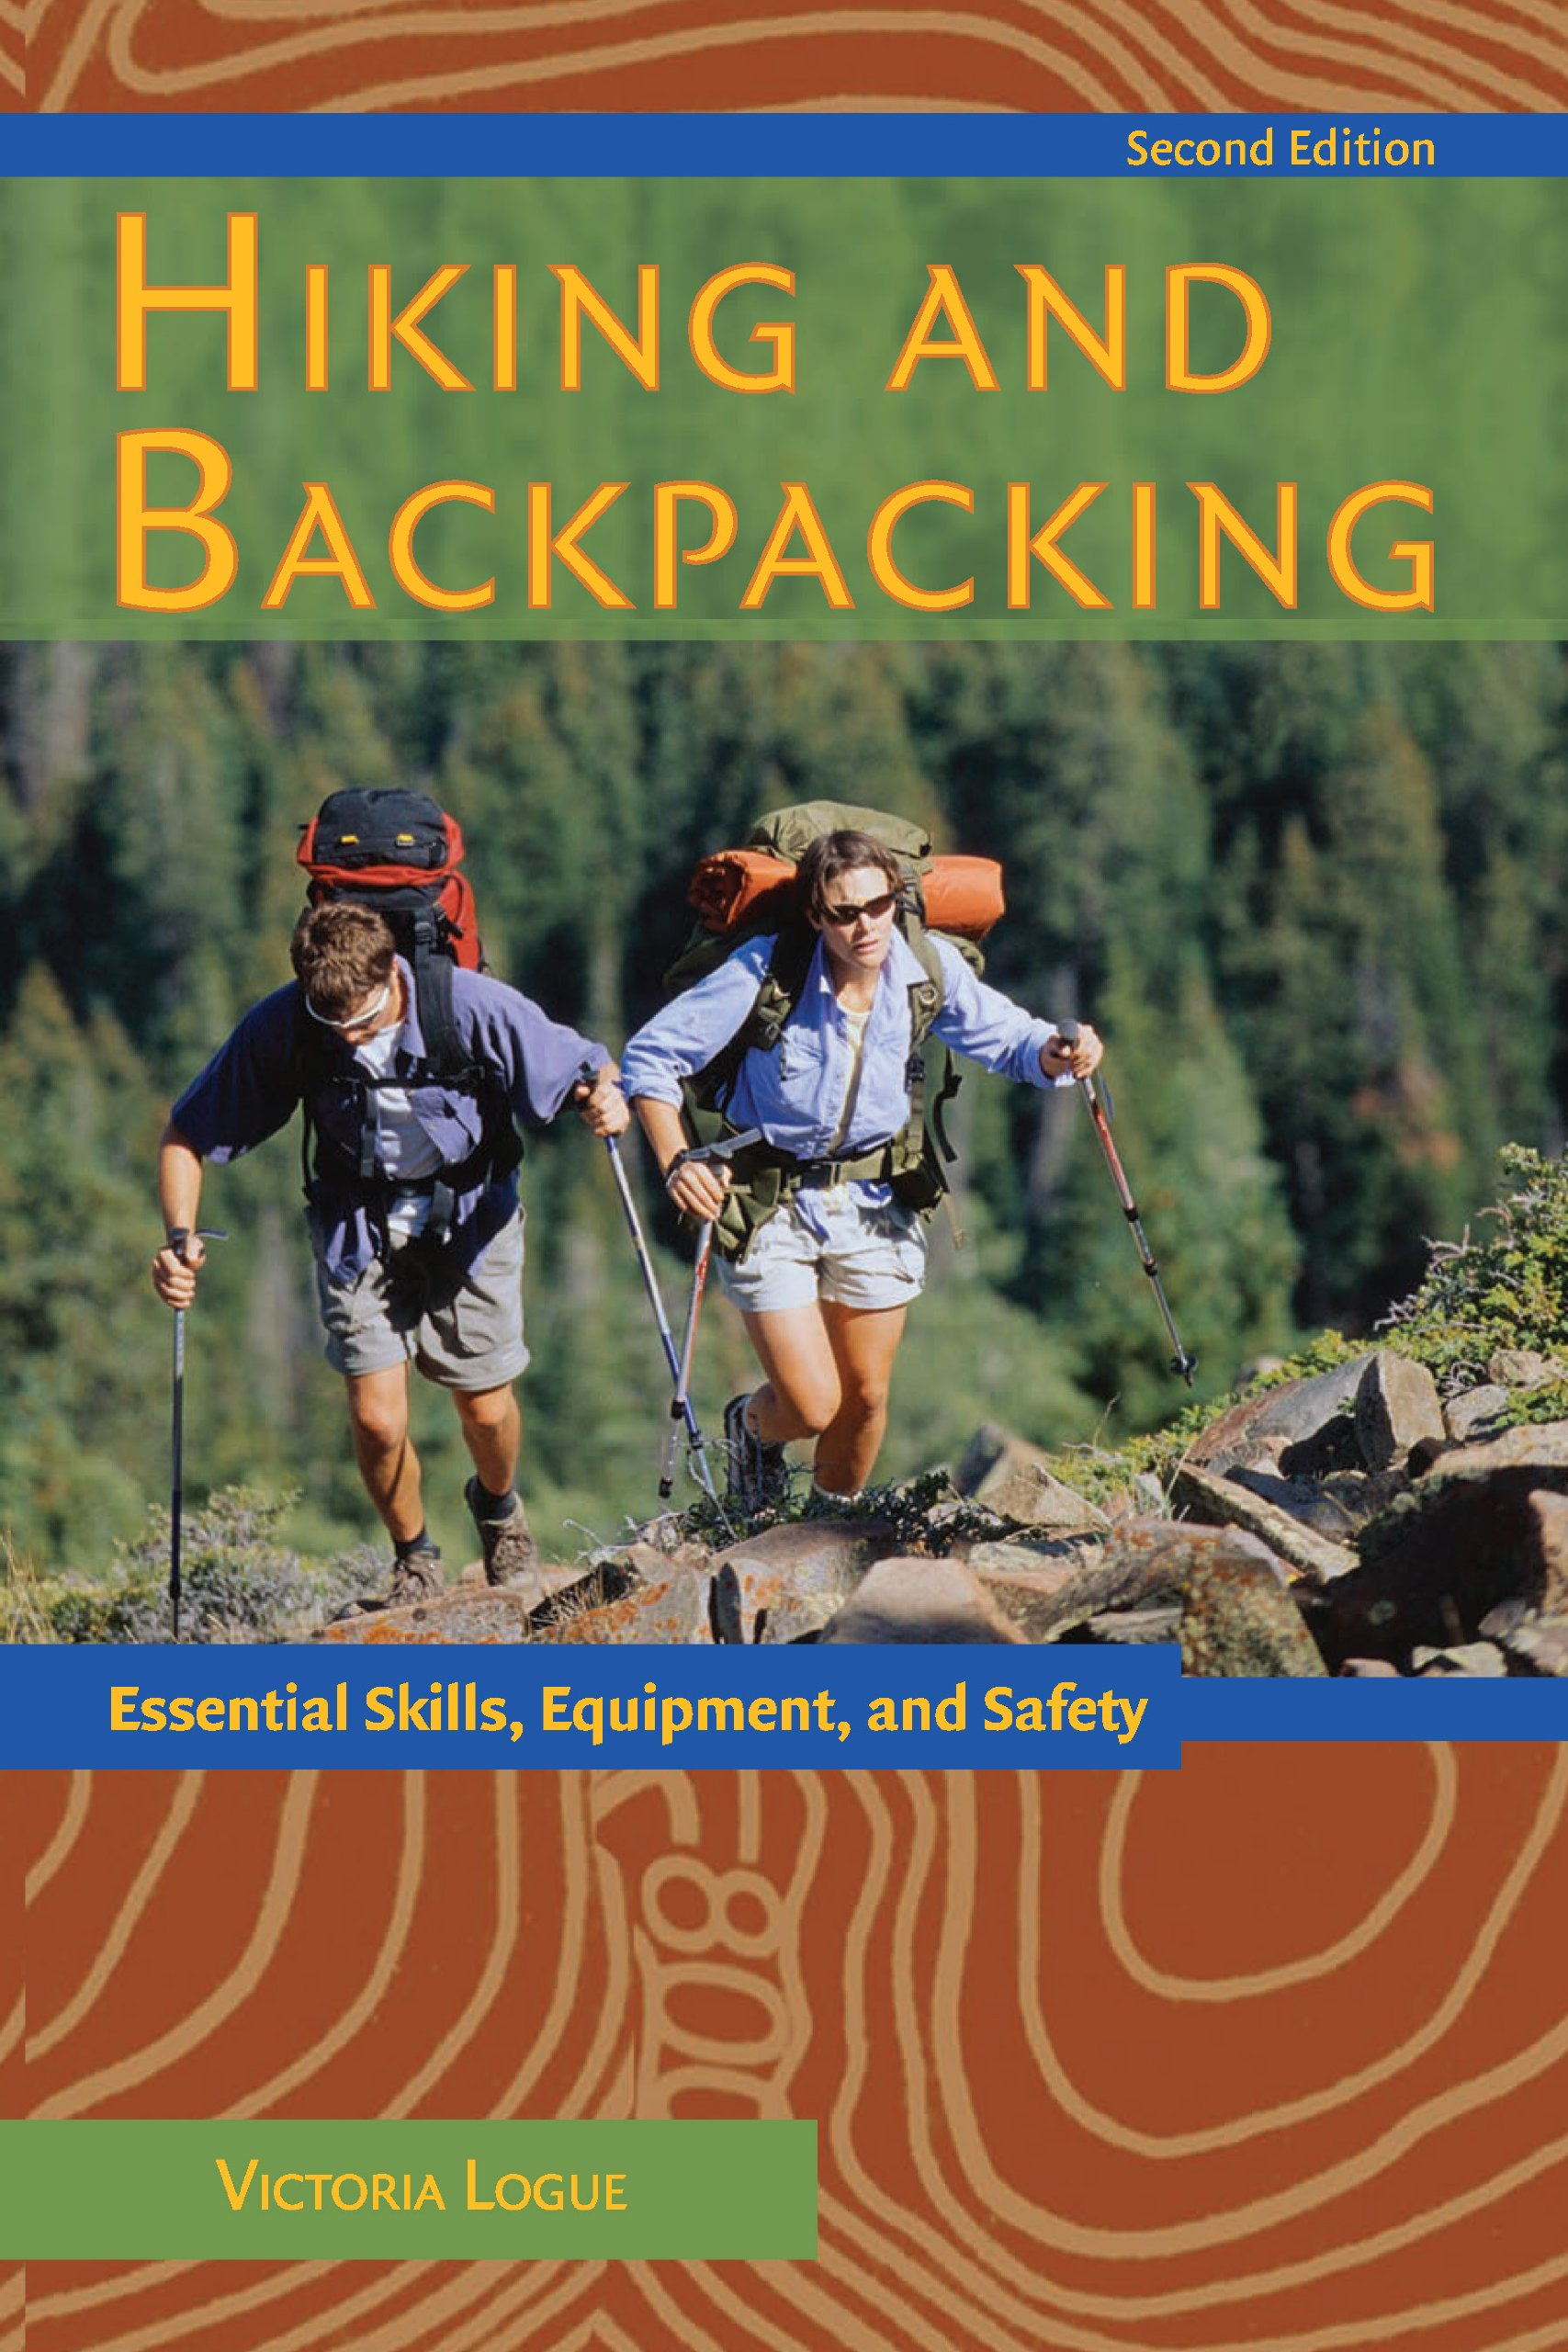 Hiking and Backpacking: Essential Skills, Equipment, and Safety by MENASHA RIDGE PRESS